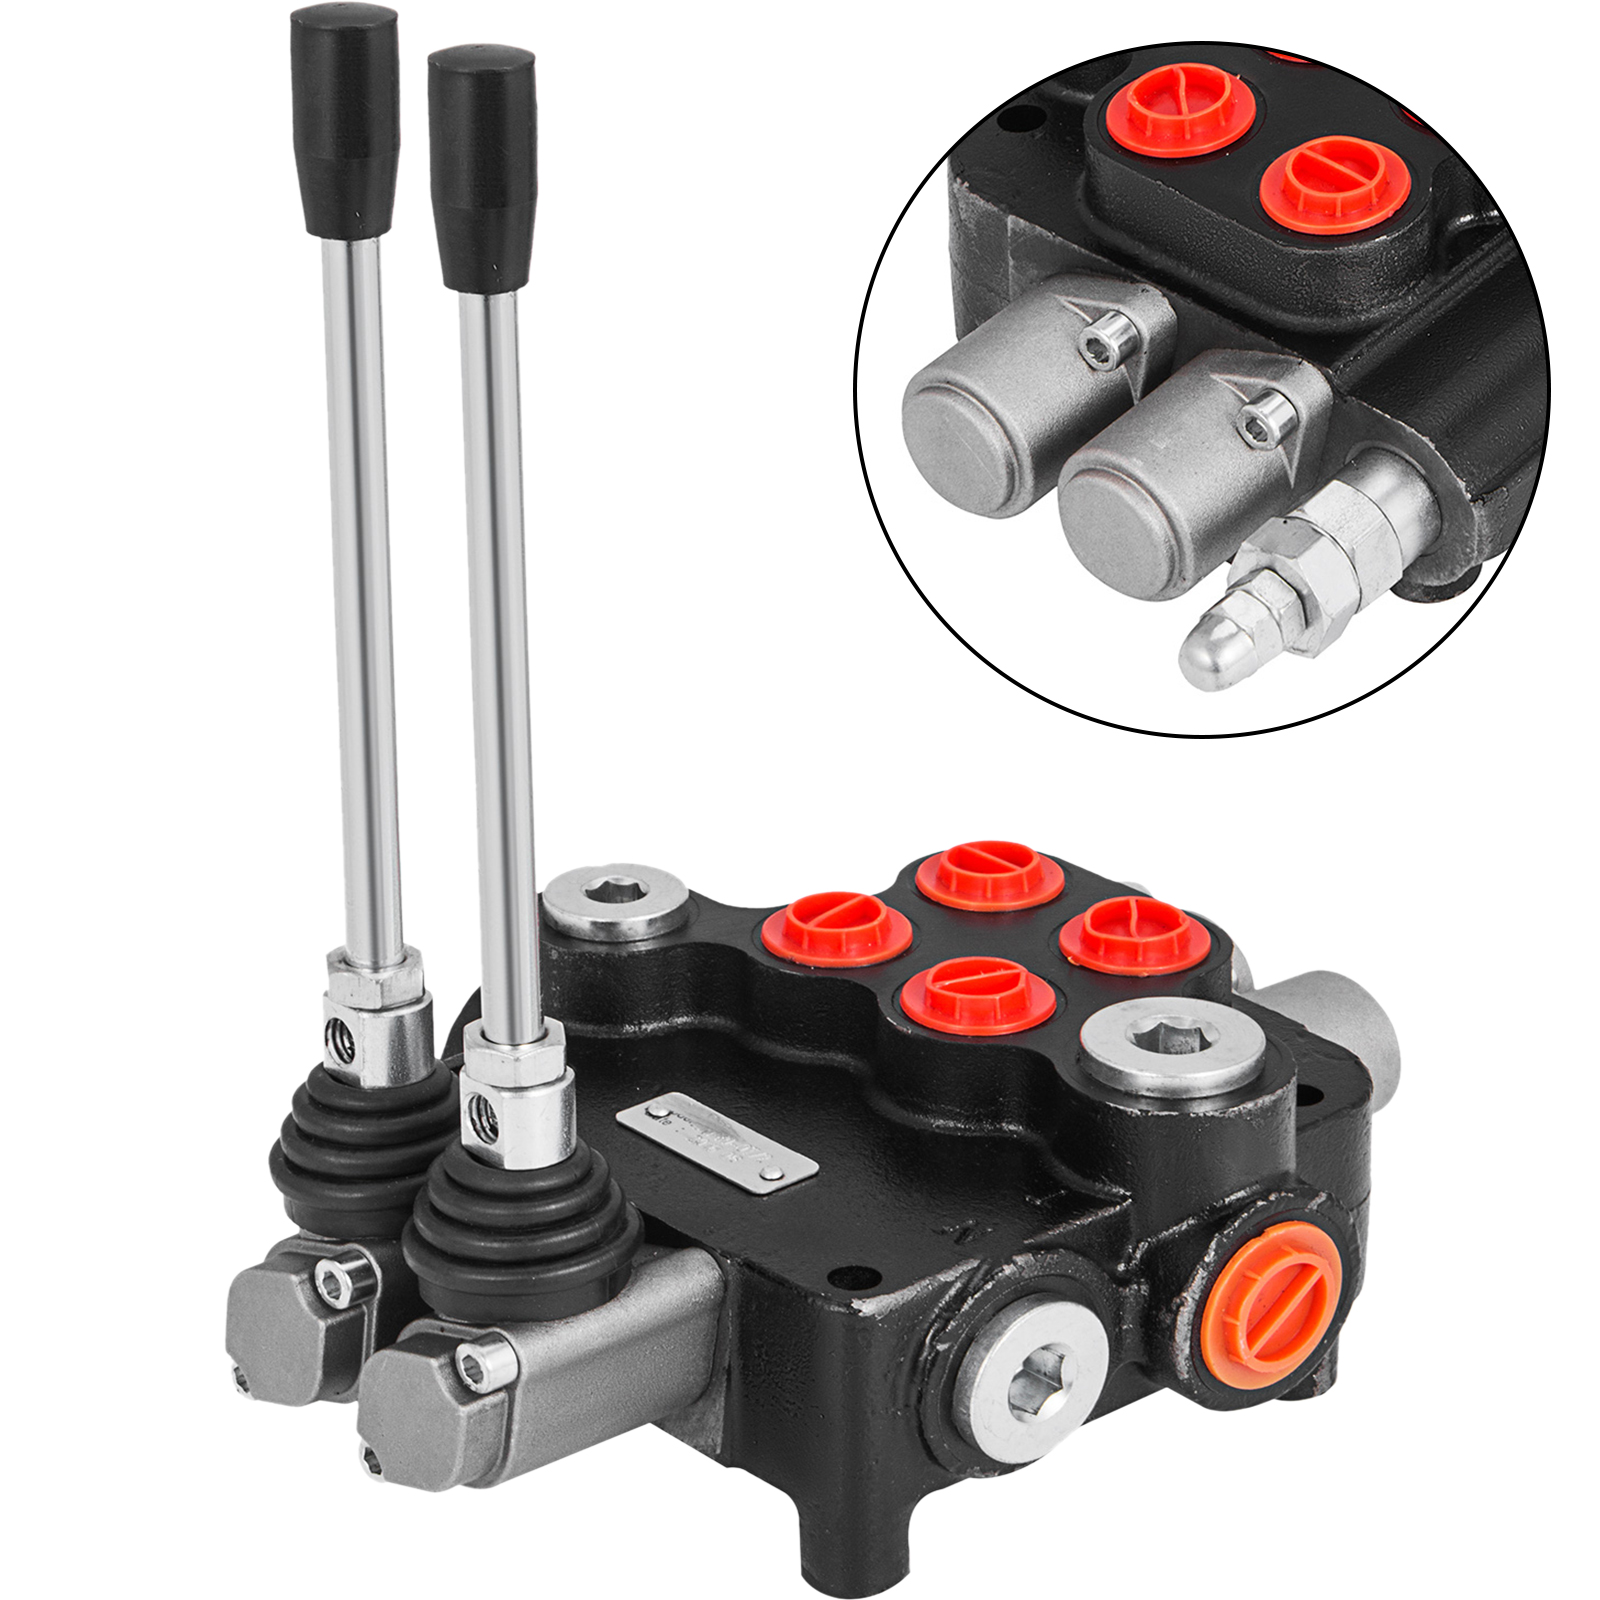 2-Spool-Hydraulic-Control-Valve-21GPM-Double-Acting-Monoblock-Log-Small-Tractors